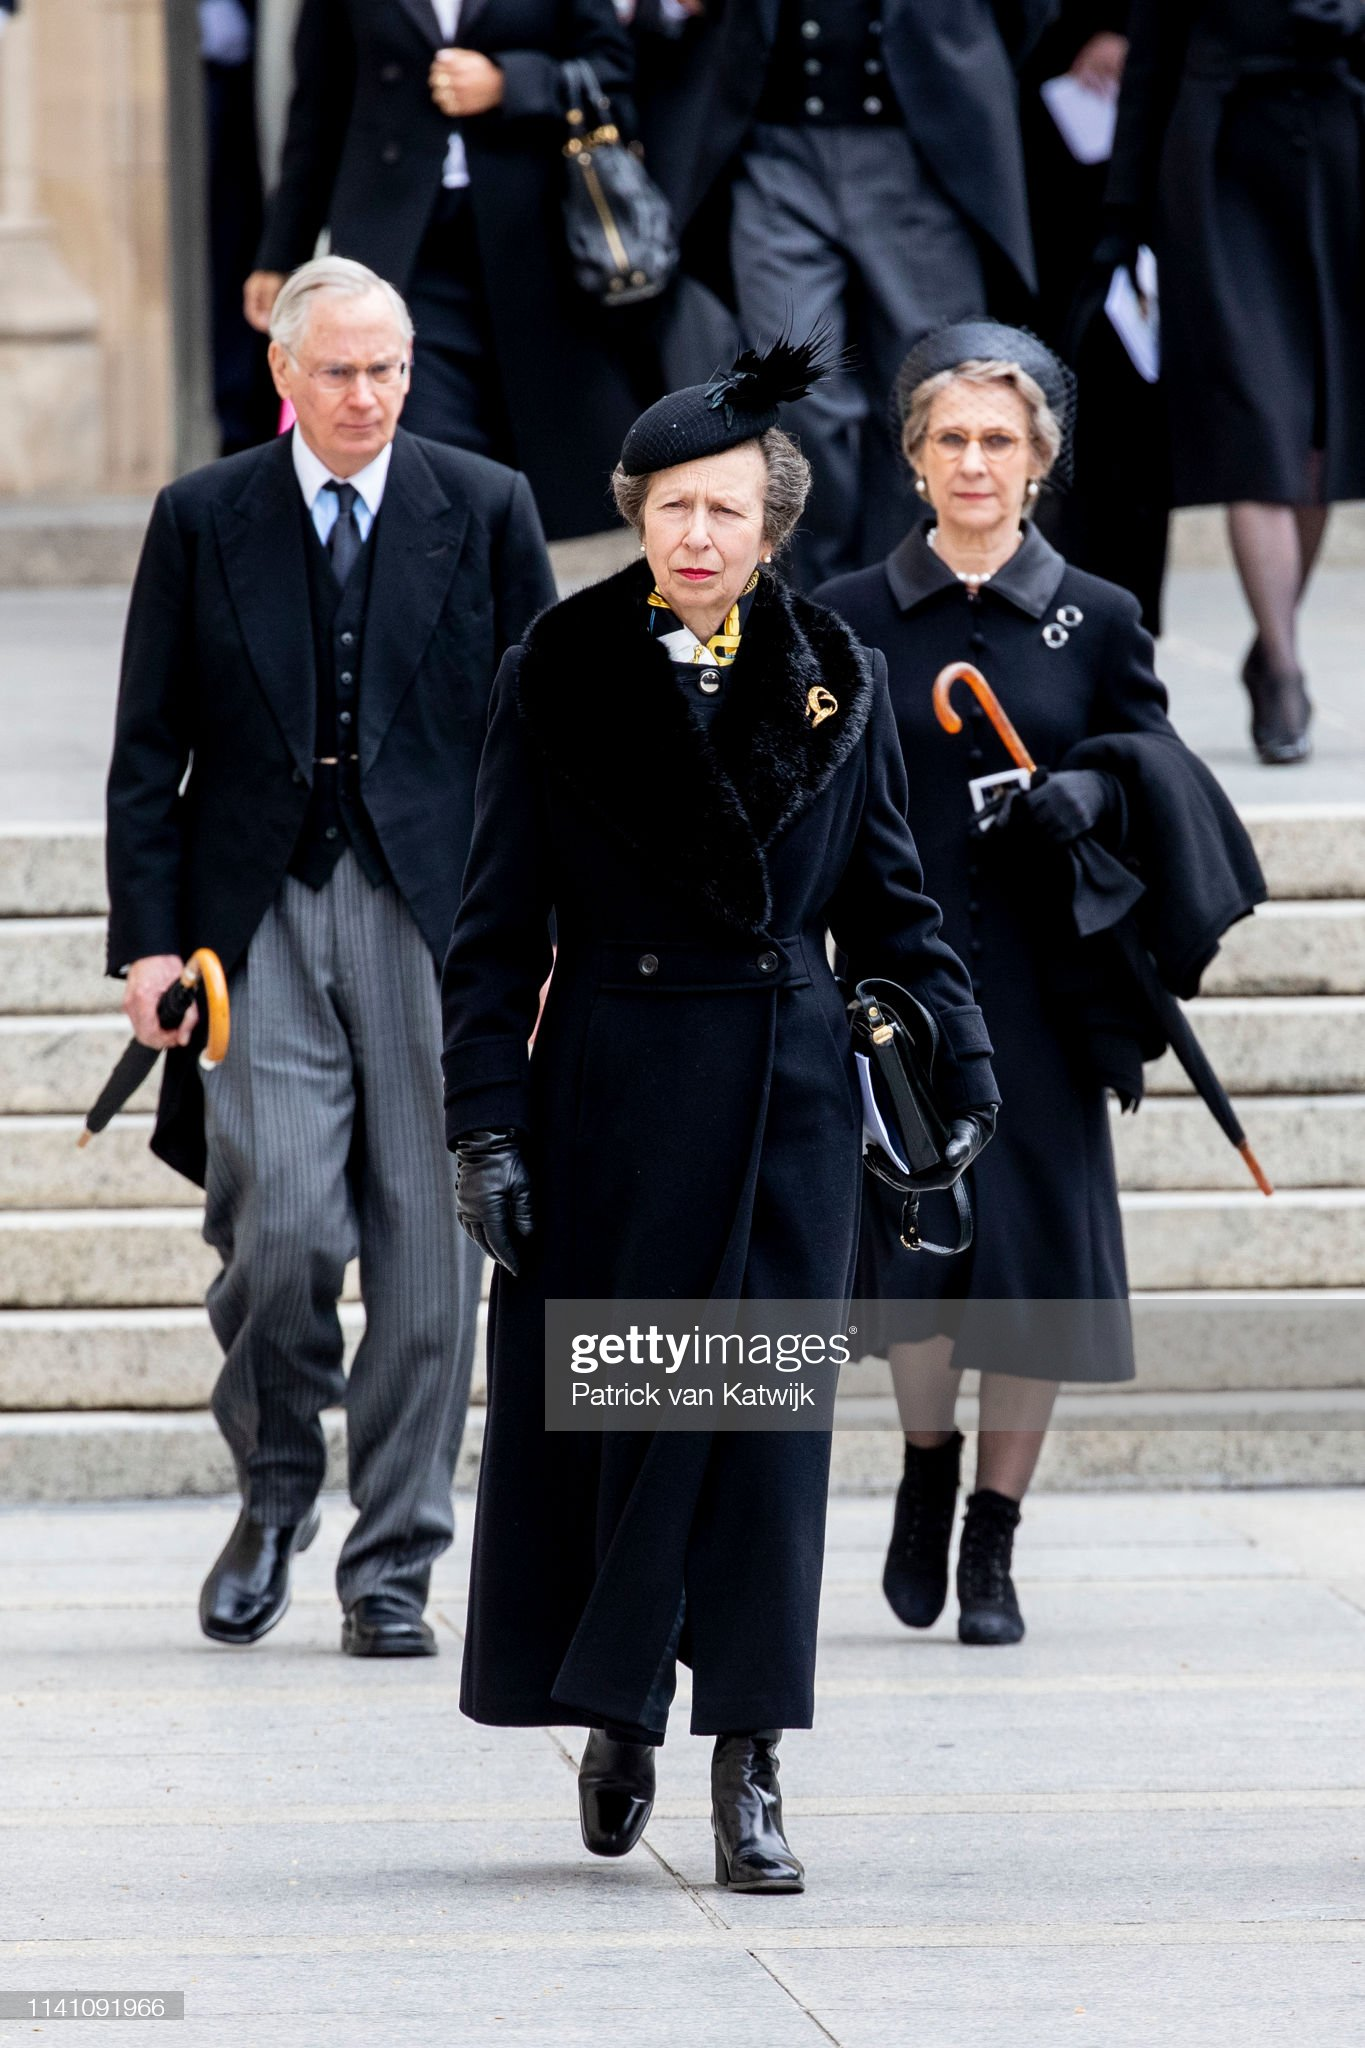 https://media.gettyimages.com/photos/princess-anne-of-the-united-kingdom-attends-the-funeral-of-grand-duke-picture-id1141091966?s=2048x2048